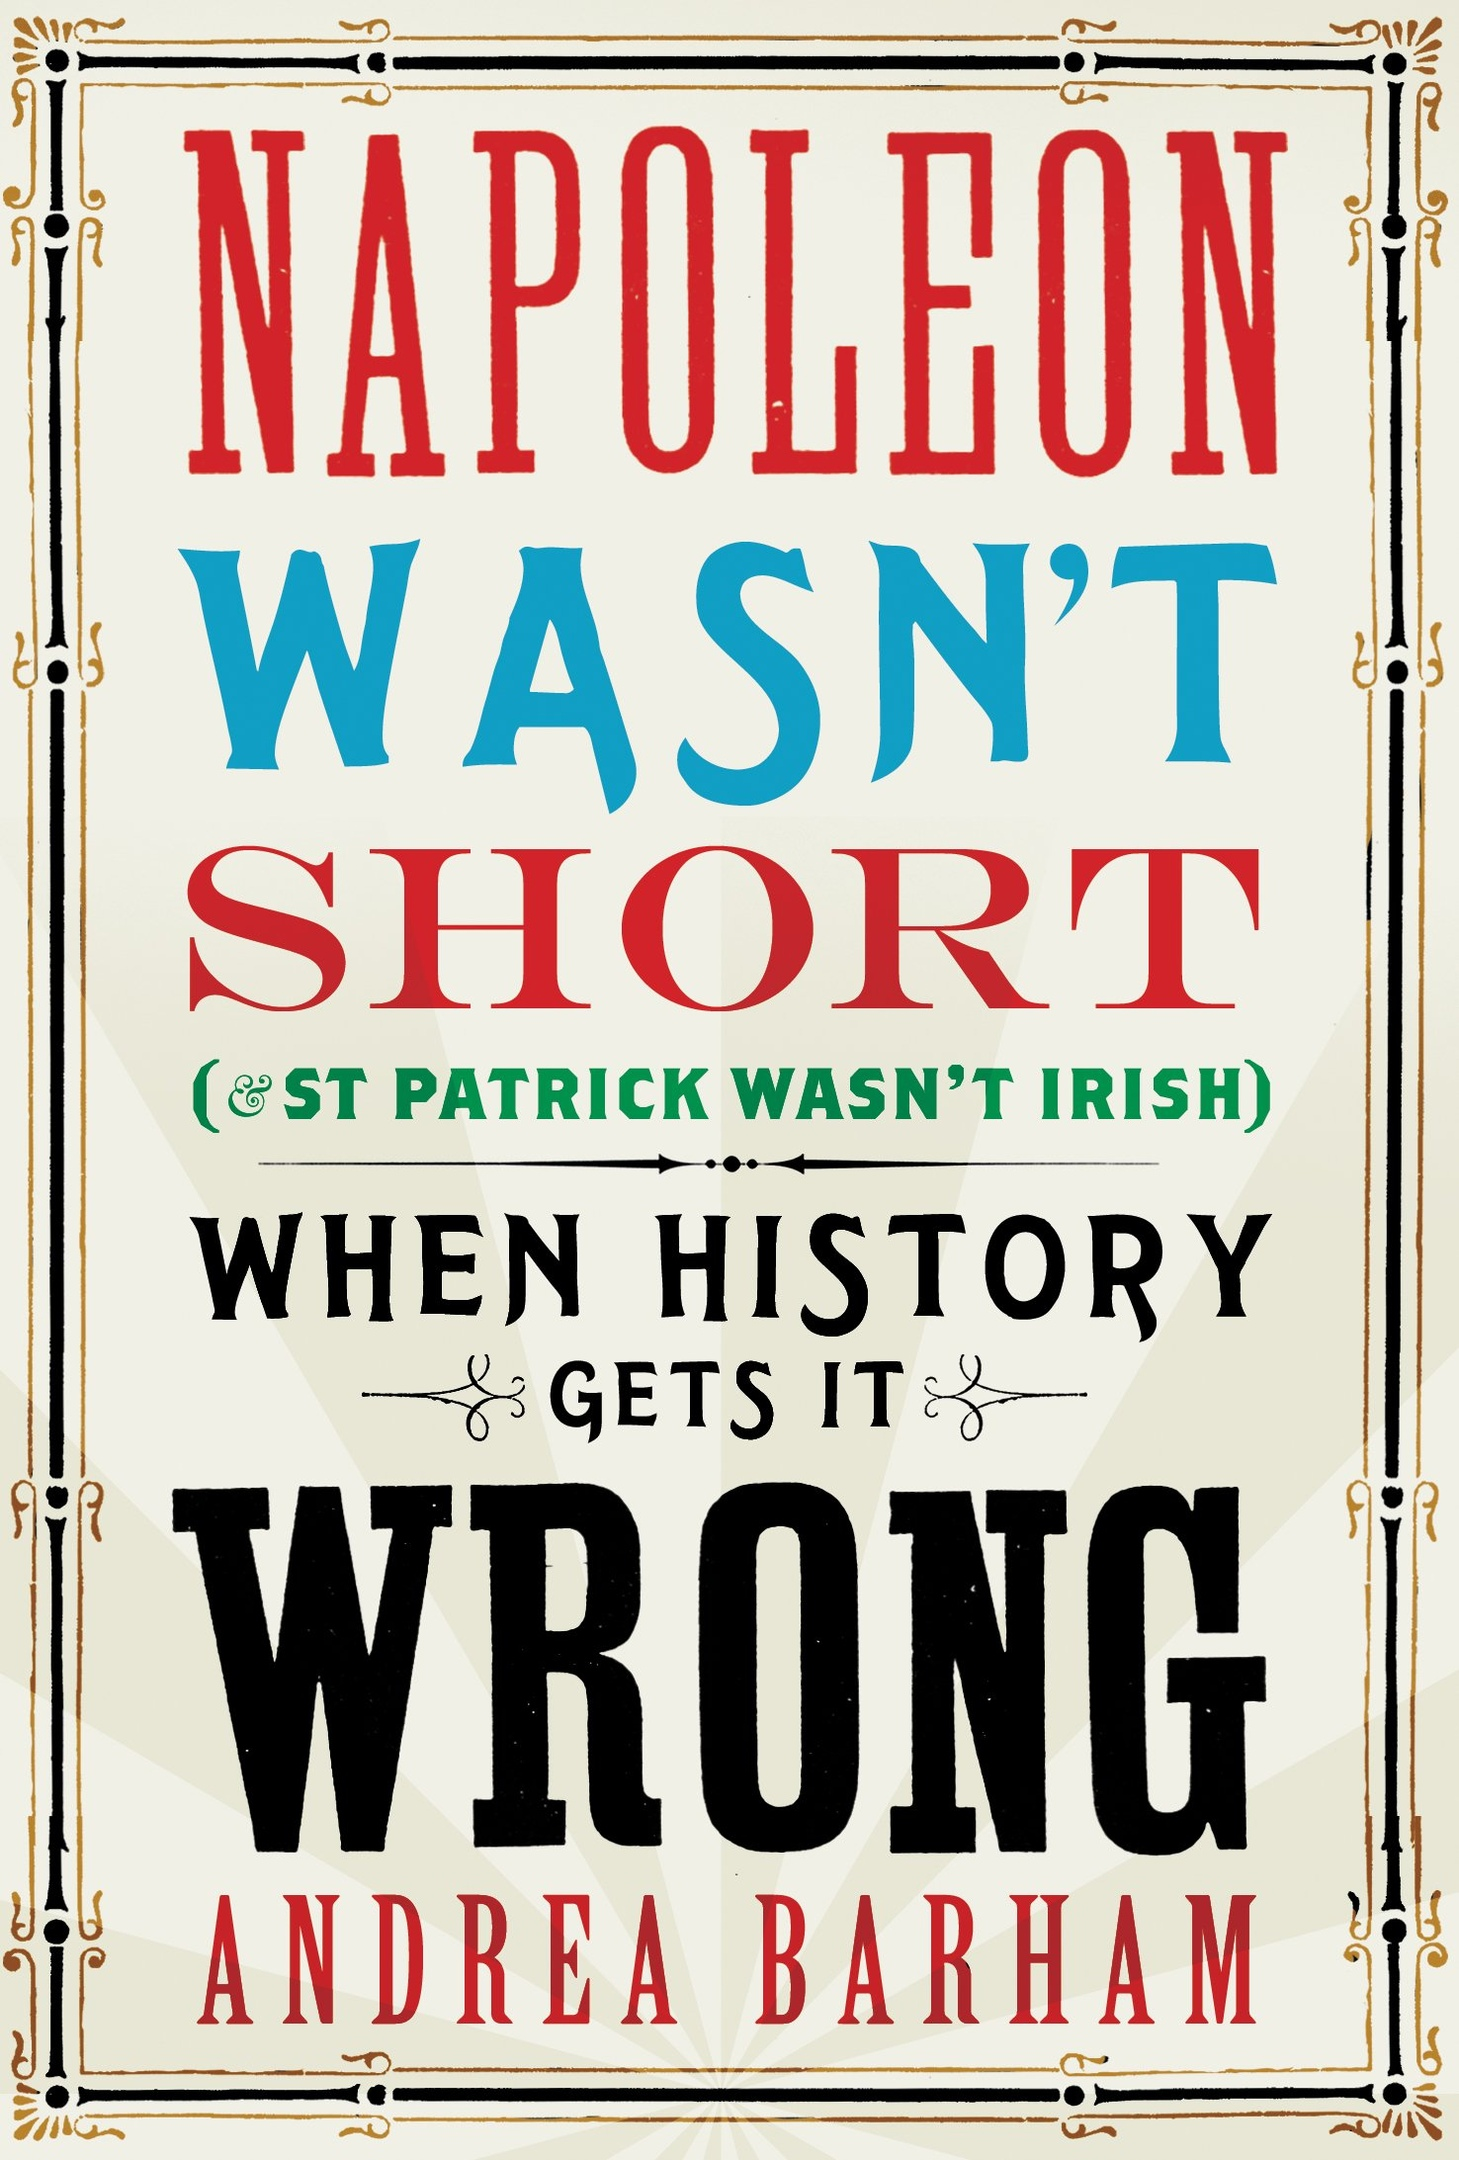 Andrea Barham – When History Gets It Wrong